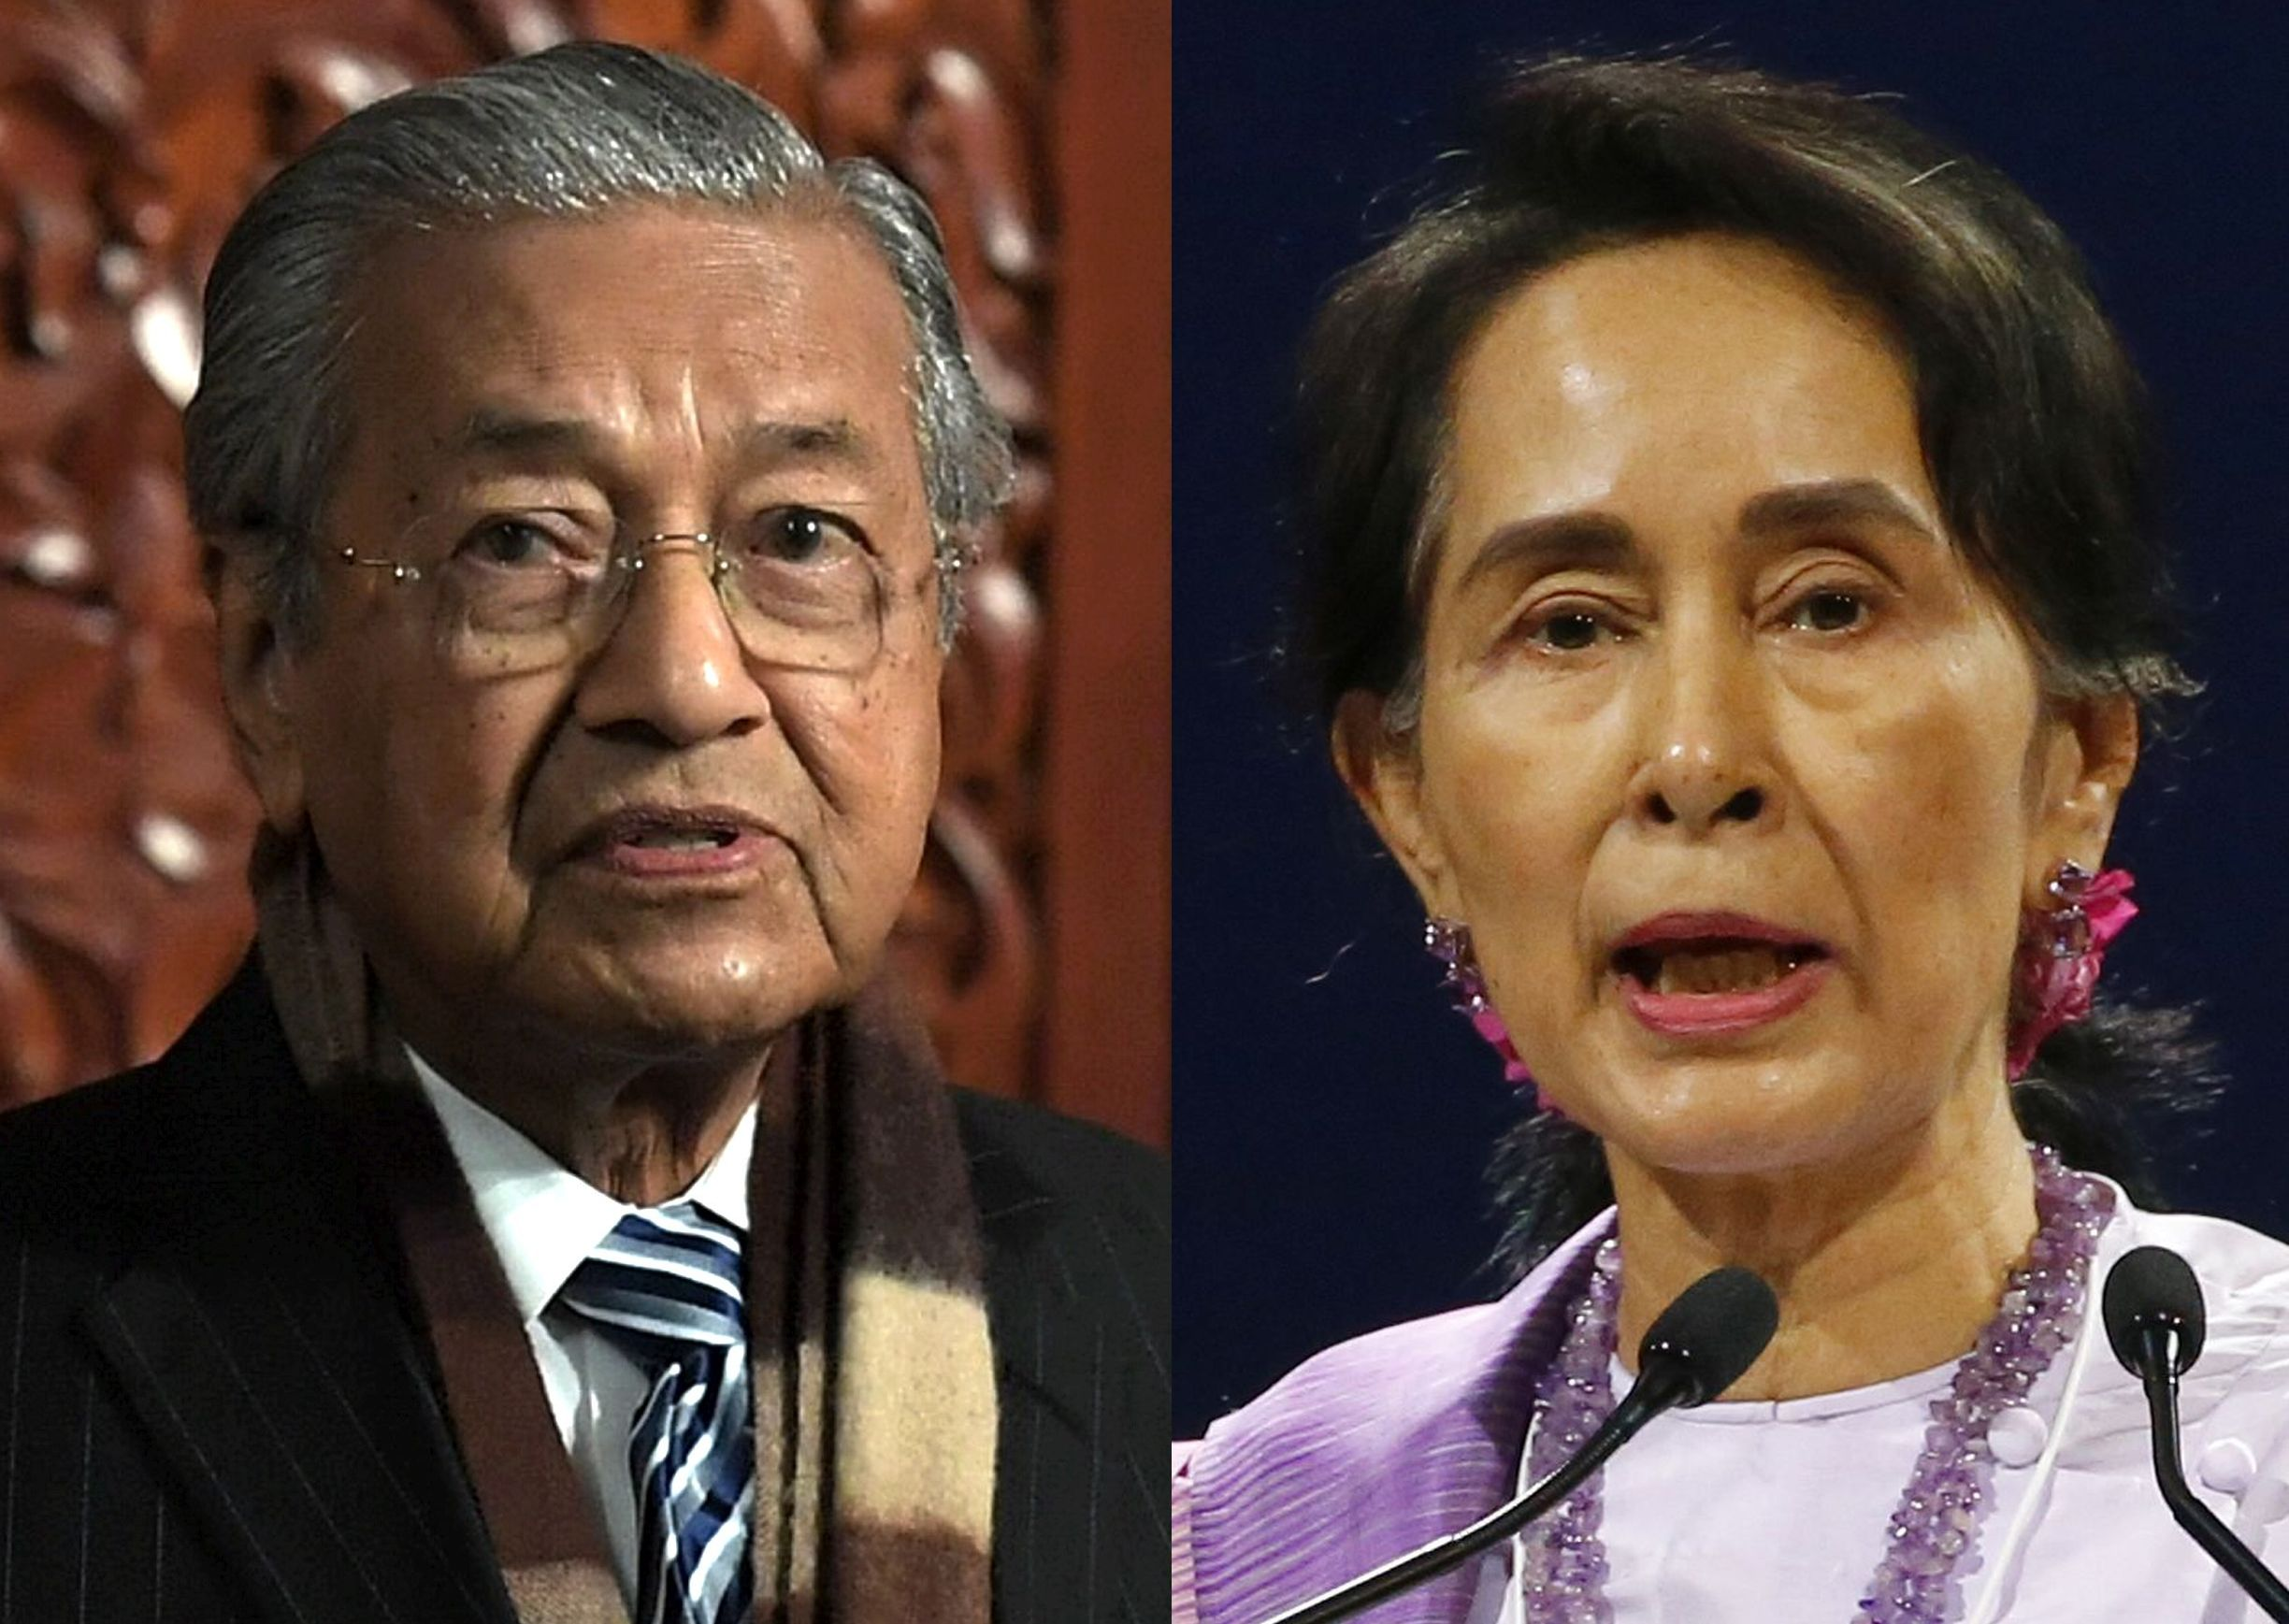 Malaysia will no longer support Aung San Suu Kyi says Dr M | The